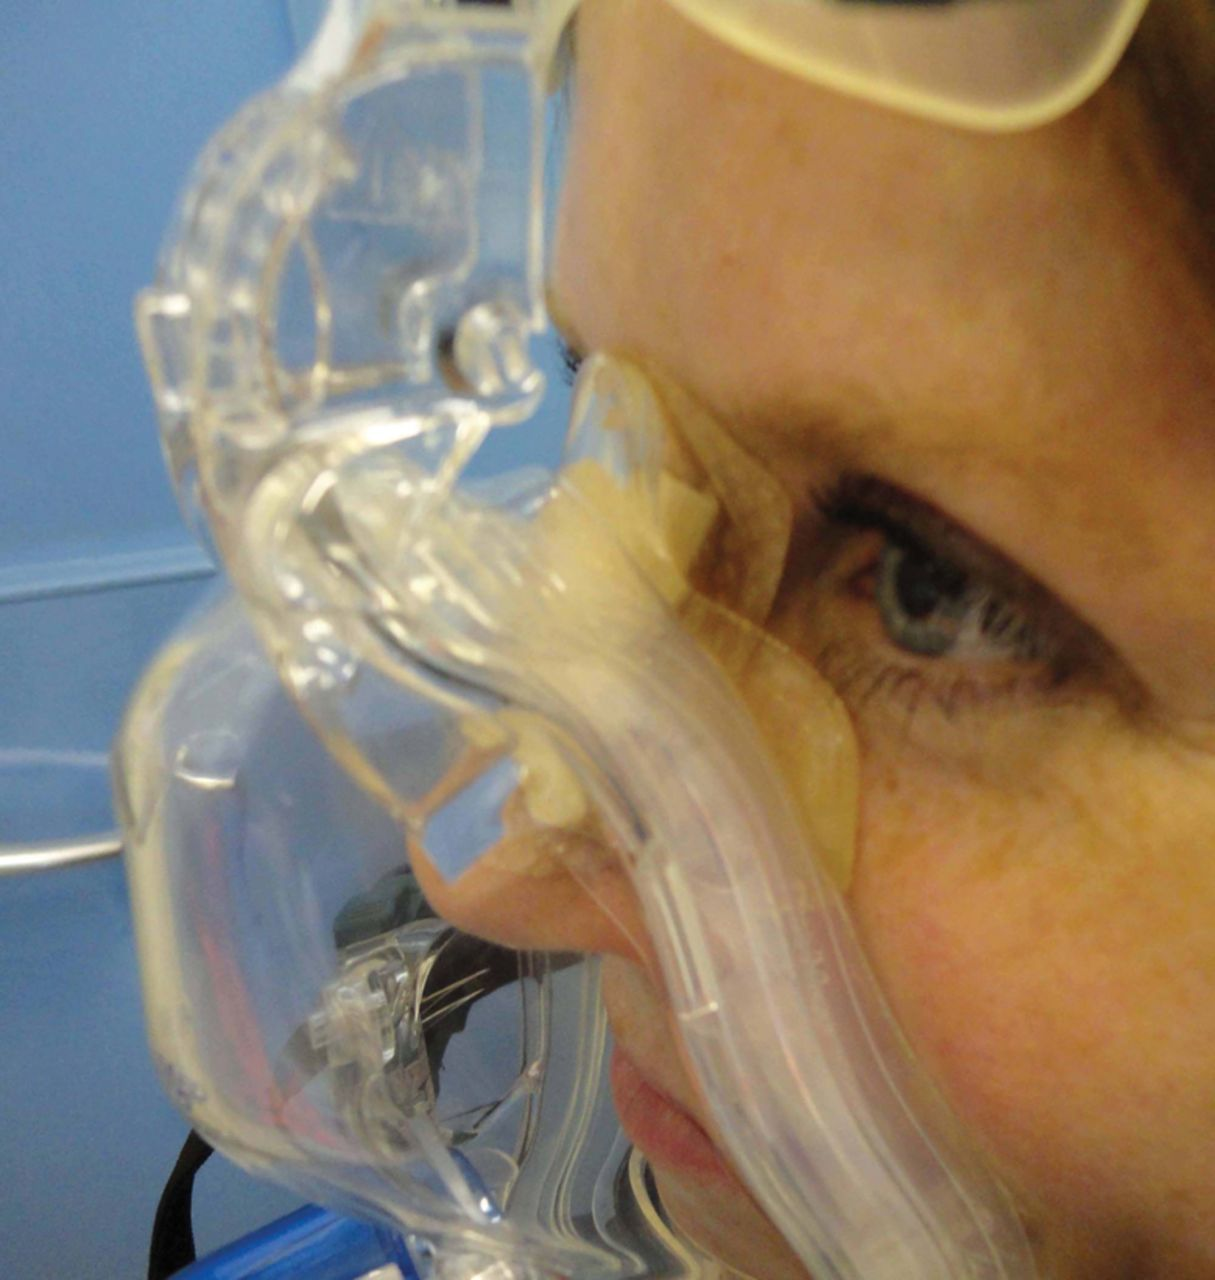 How To Avoid Interface Problems In Acute Noninvasive Ventilation